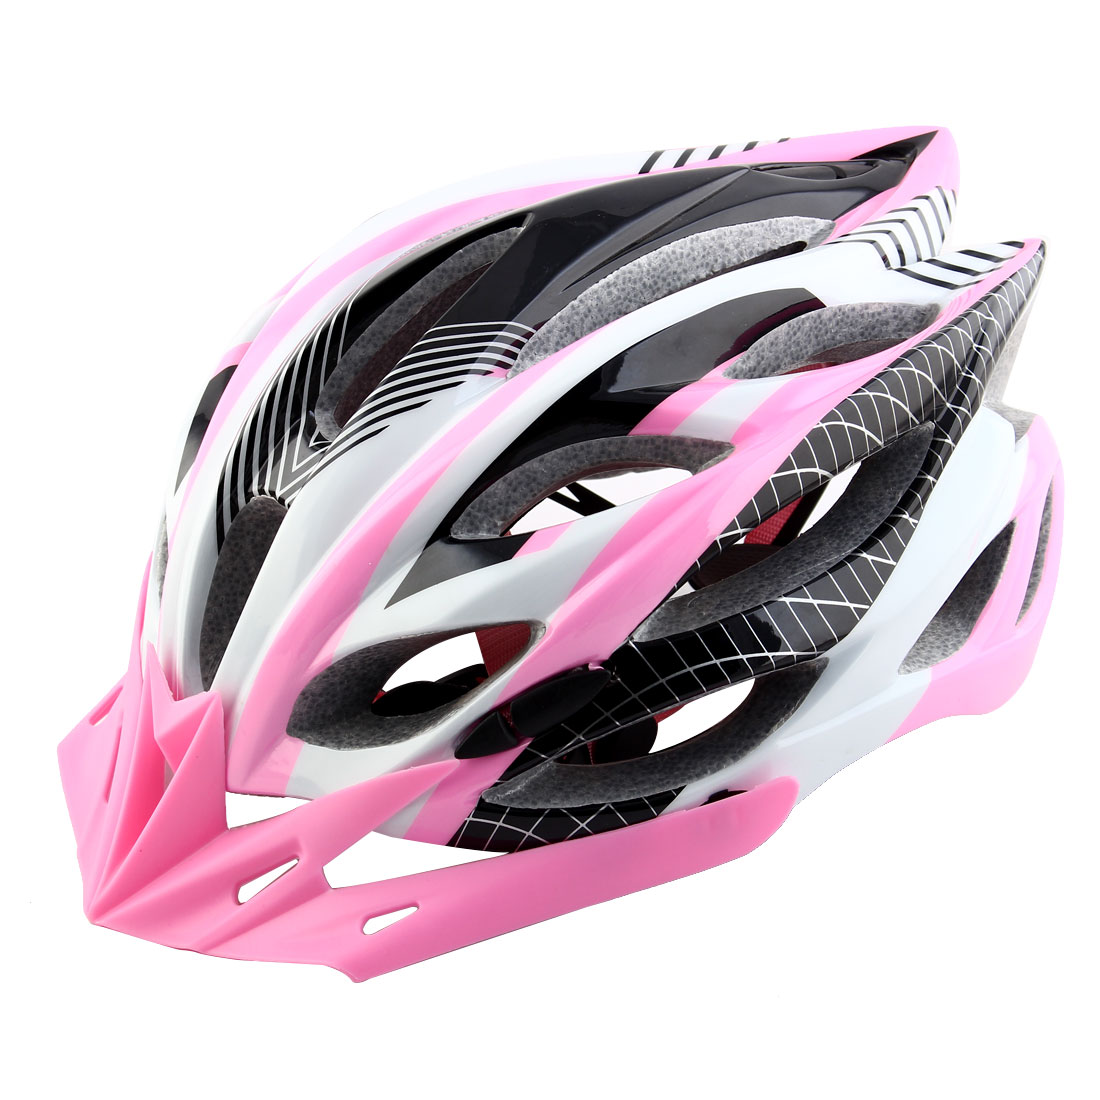 Patent Authorized Adult Unisex Removable Visor Cycling Cap Bicycle Hat Adjustable Safety Bike Helmet Pink